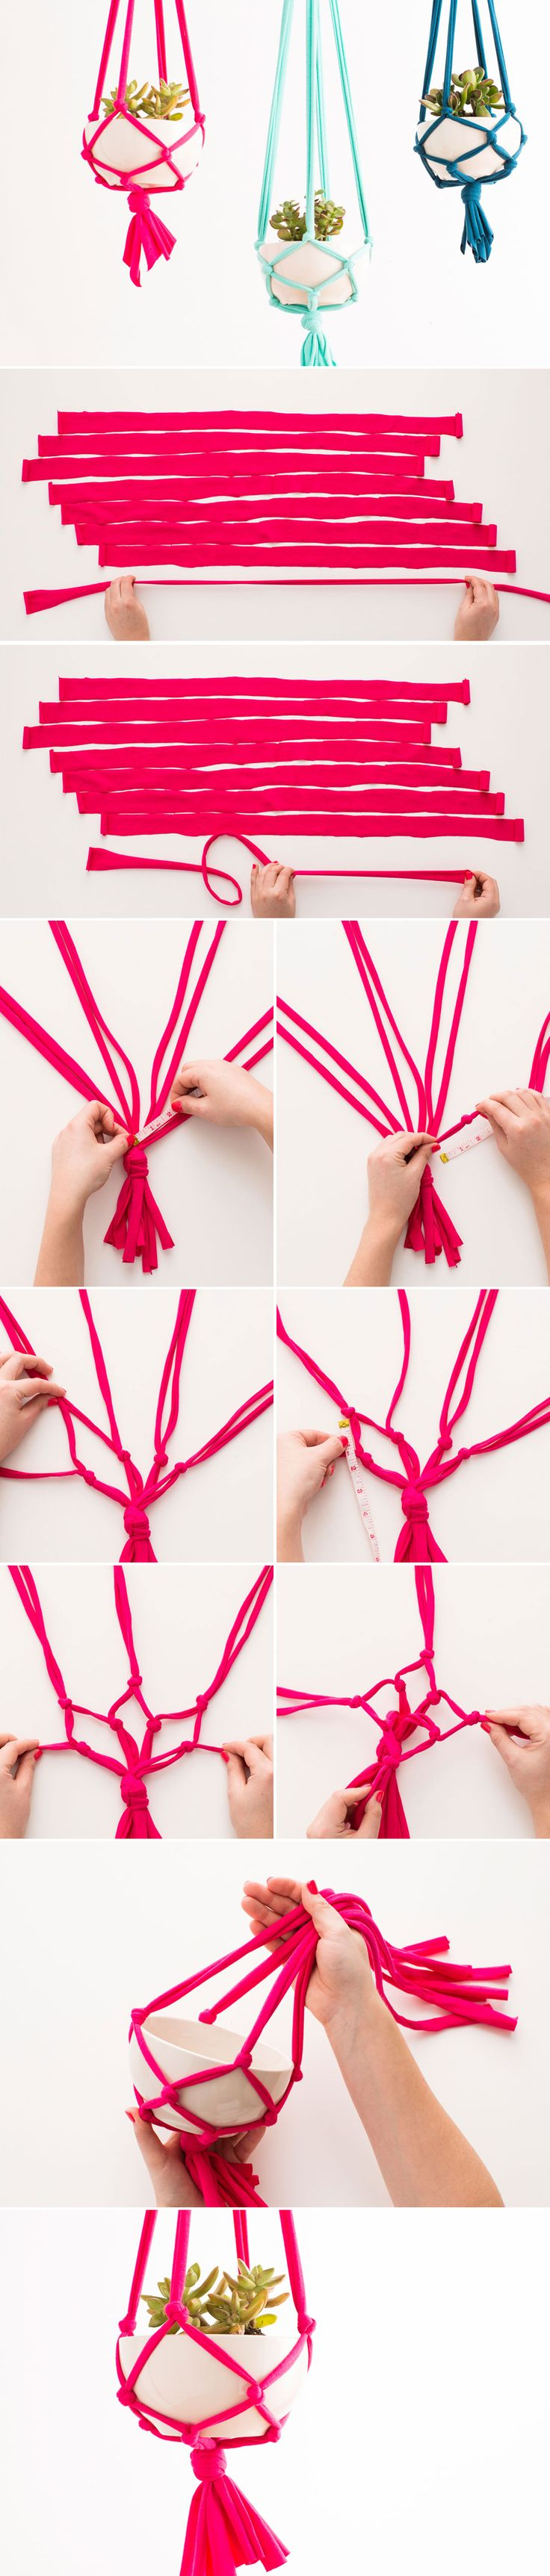 DIY your own macrame hanging vase with this tutorial.Nx